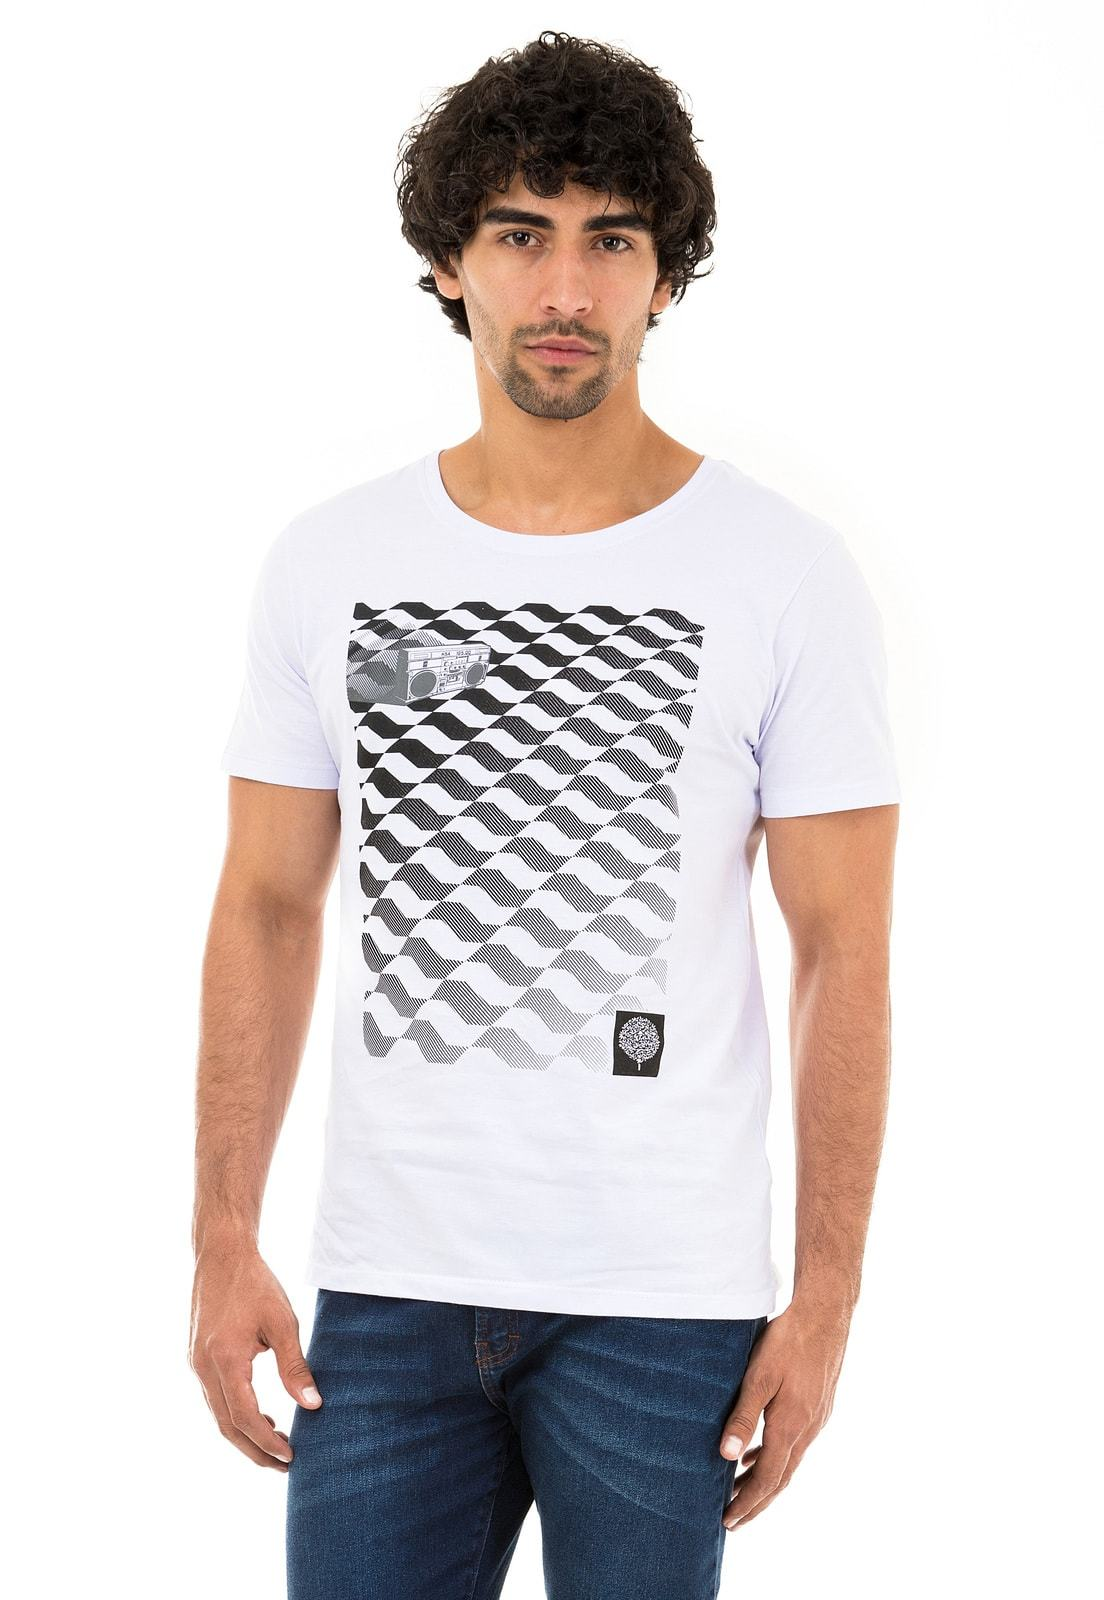 Camiseta SP Sounds KSA da árvore